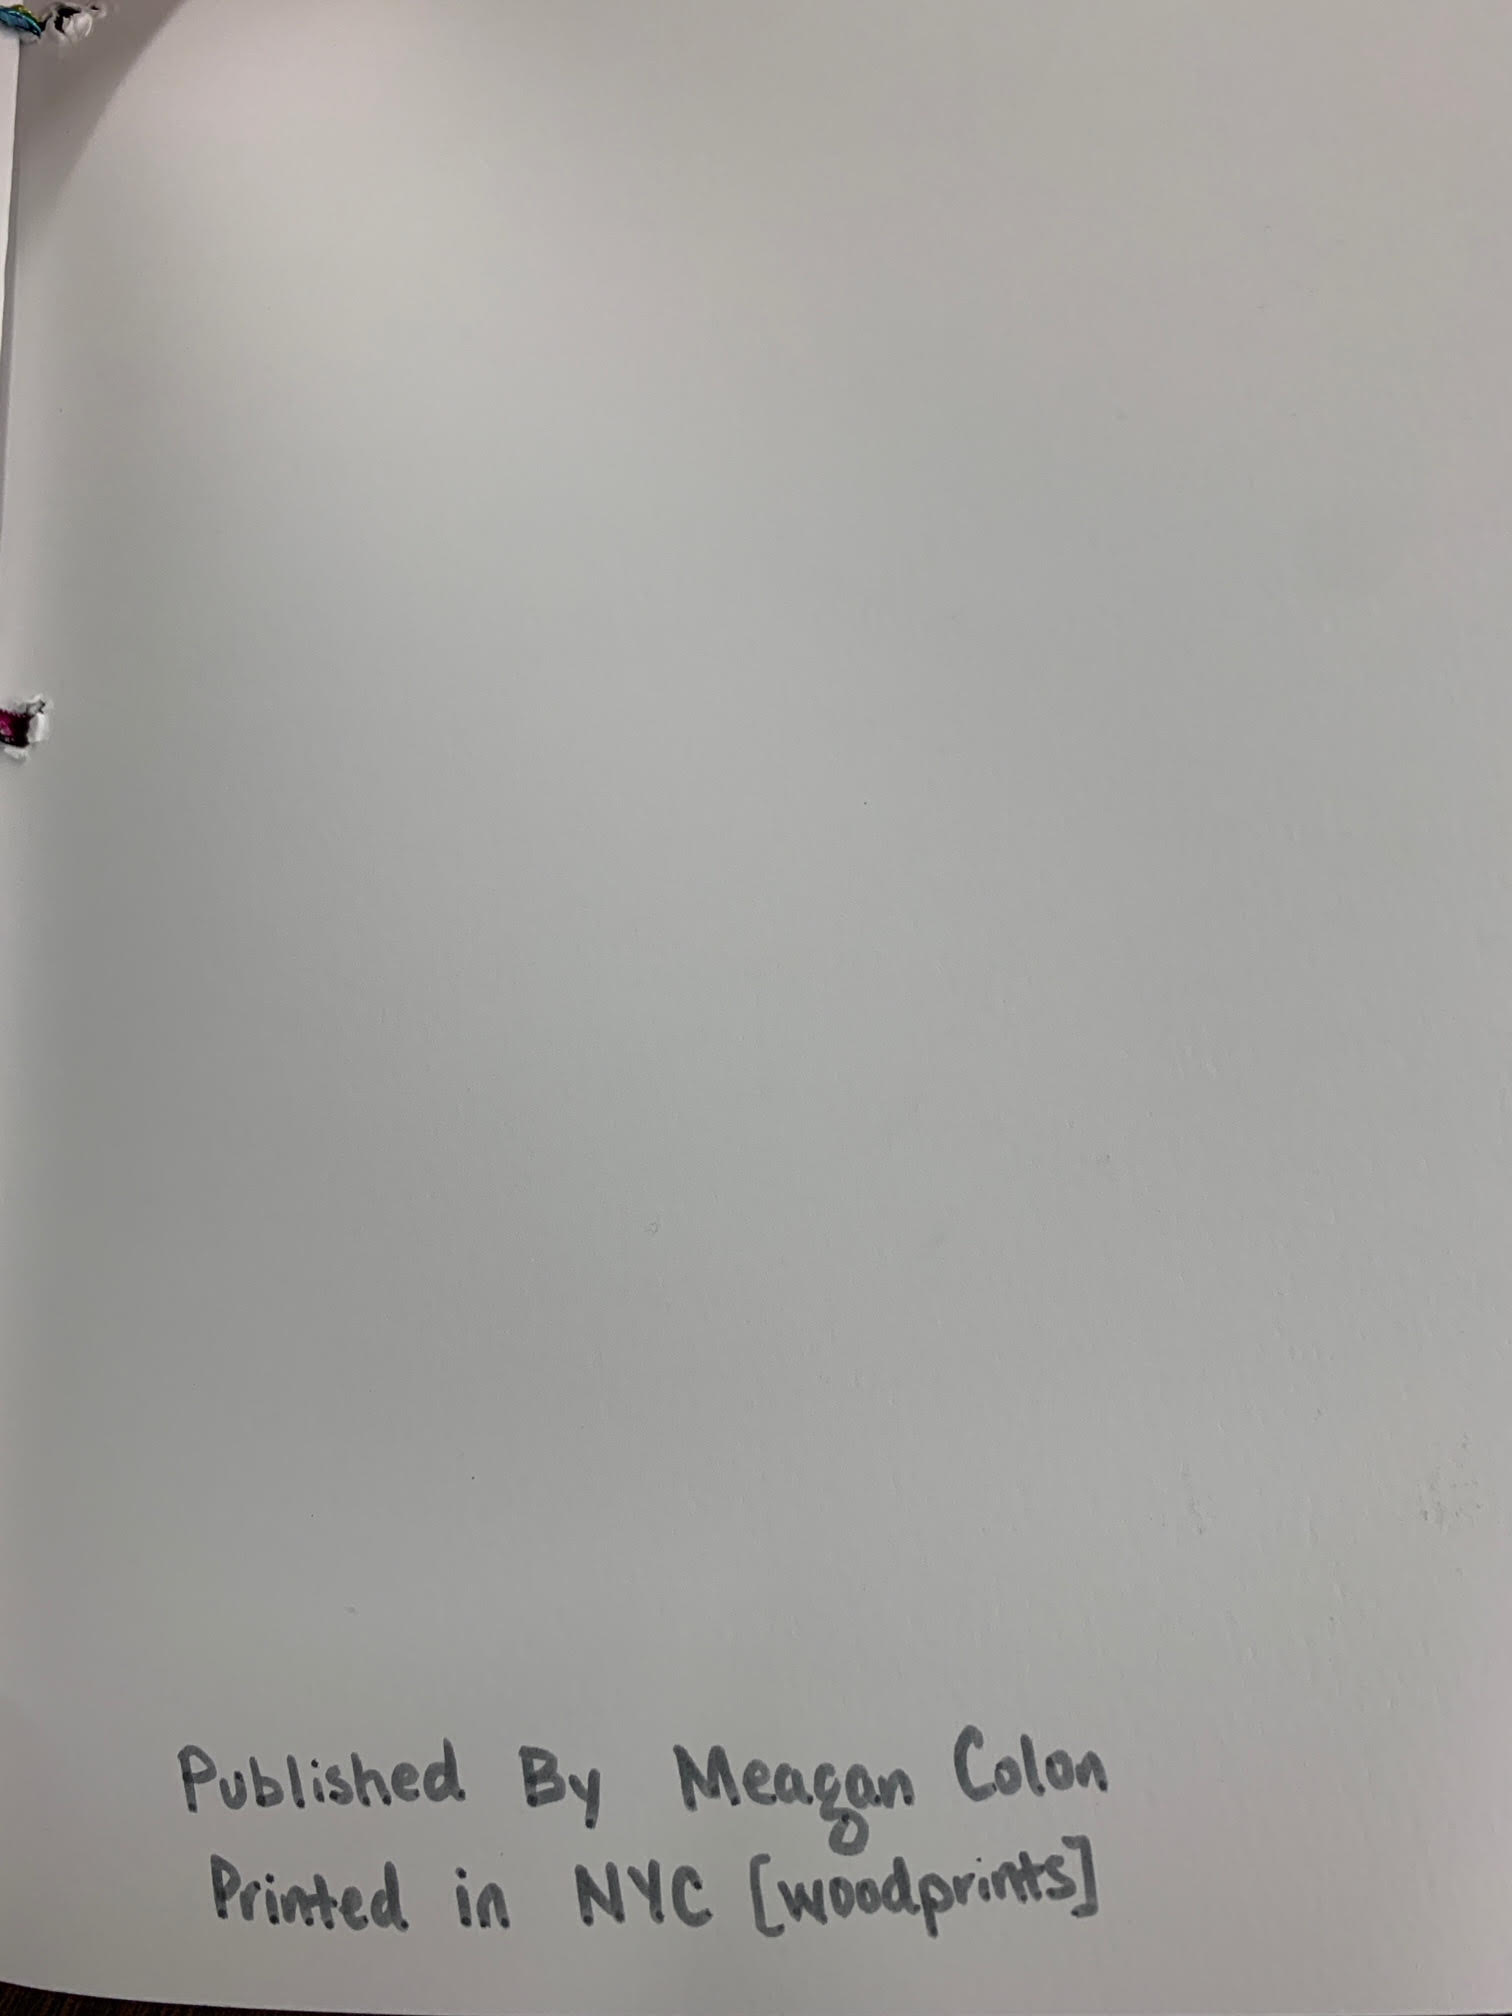 Page 15. Caption: back cover page of chapbook. Chapbook published by Meagan Colon, printed in NYC, Brooklyn, copy 1 of 1